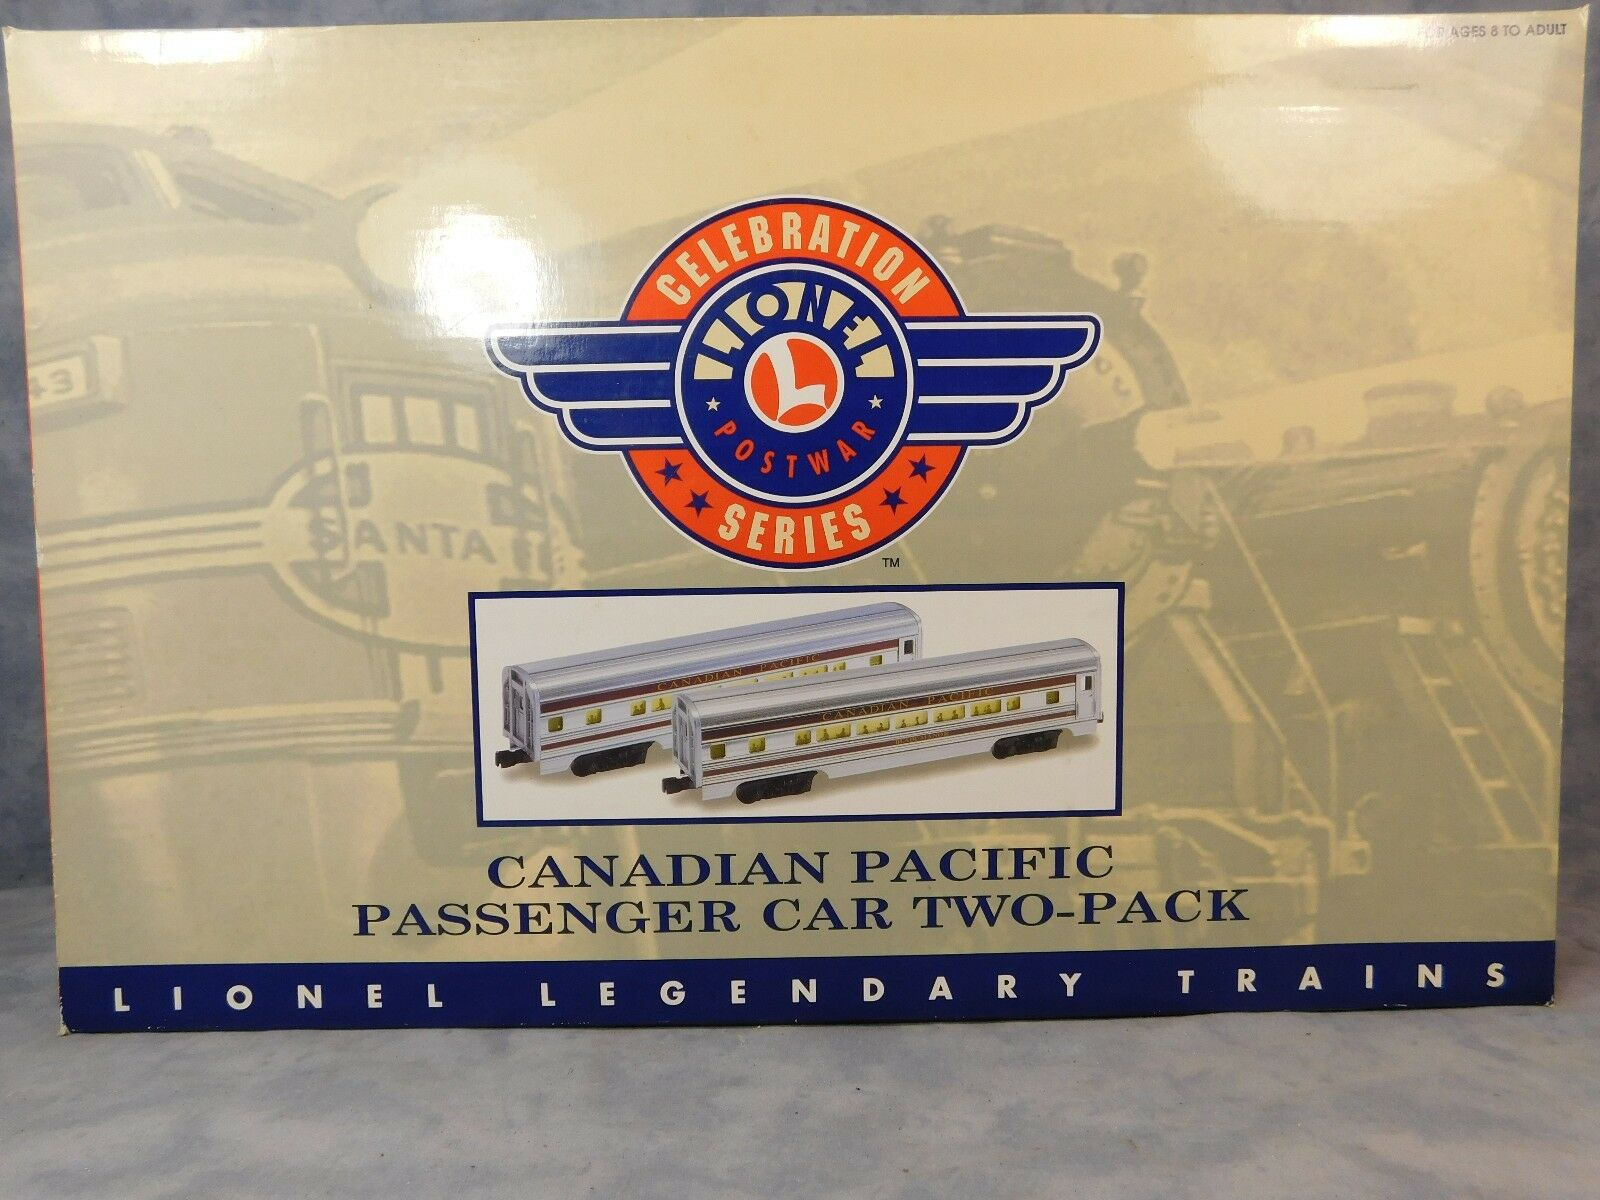 LIONEL CANADIAN PACIFIC PASSENGER CAR TWO-PACK 6-39106